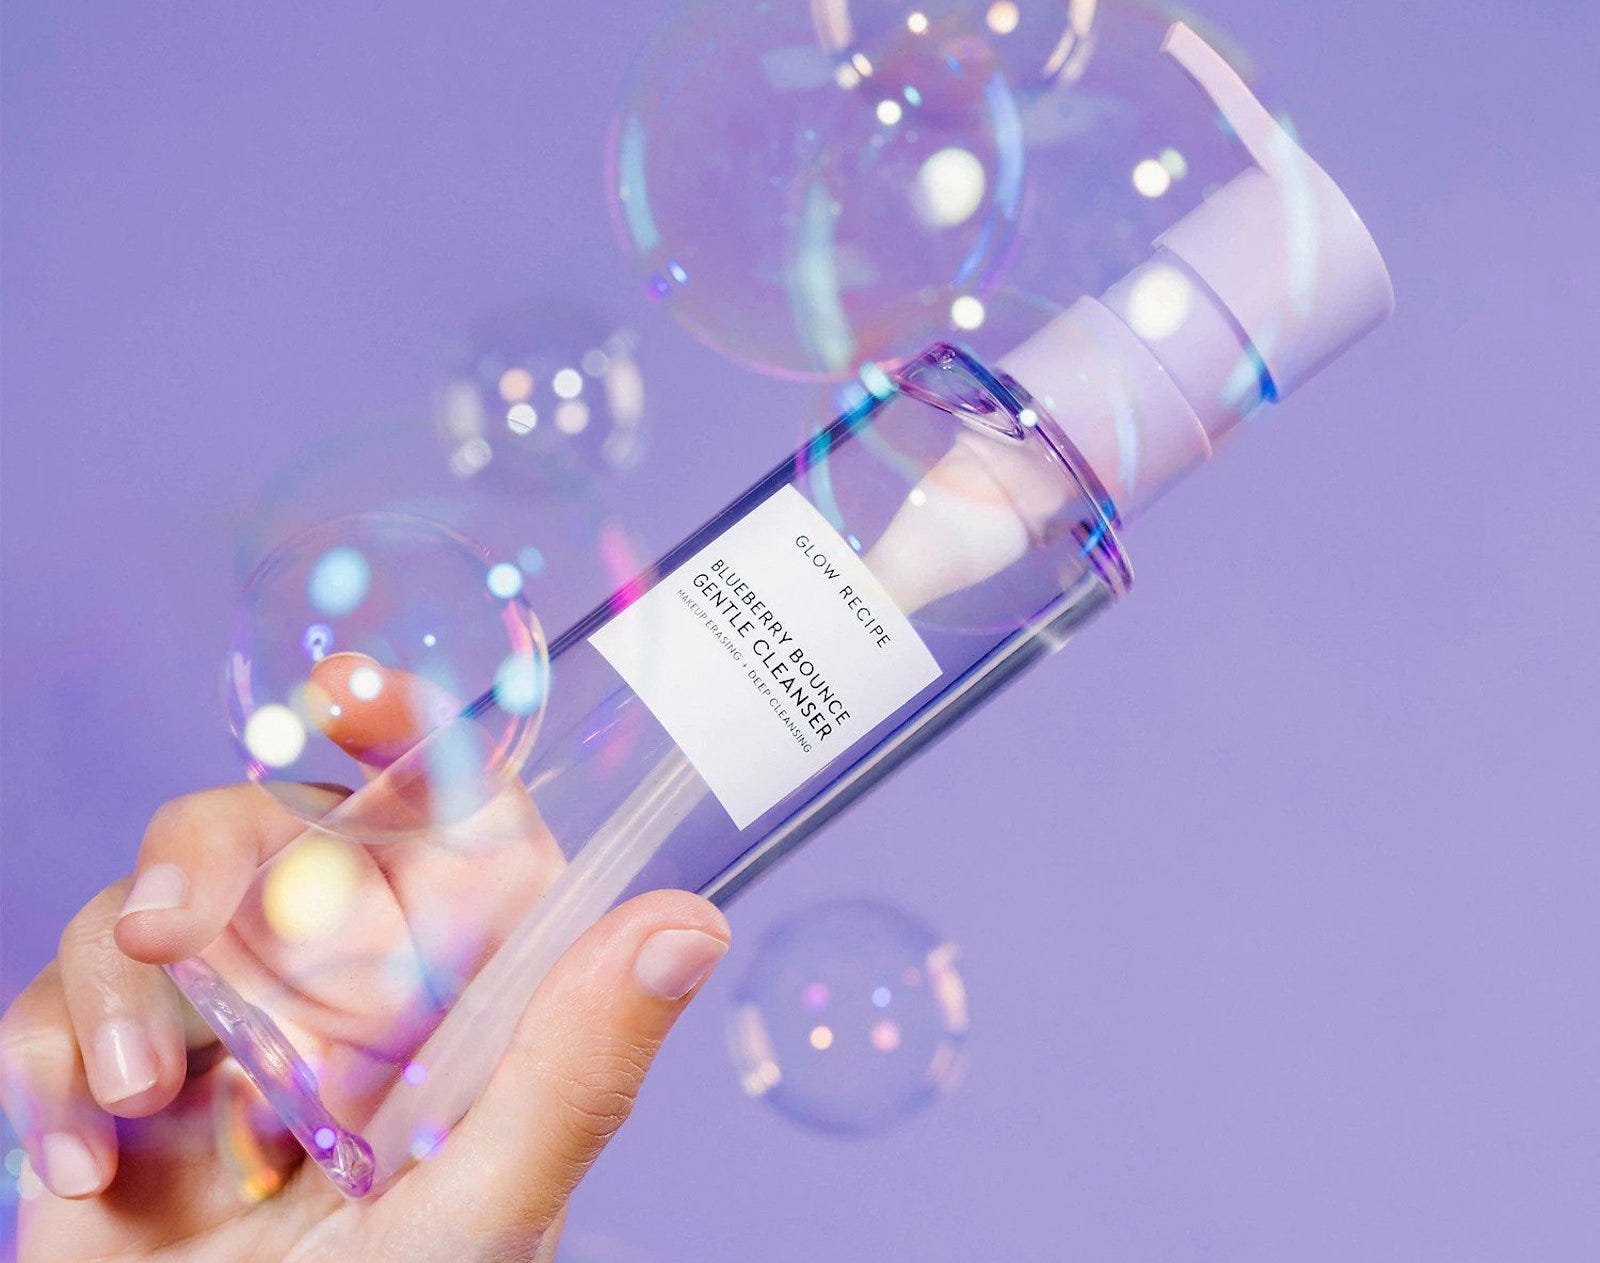 A hand holding up bottle of pale purple liquid cleanser, against a purple background with bubbles